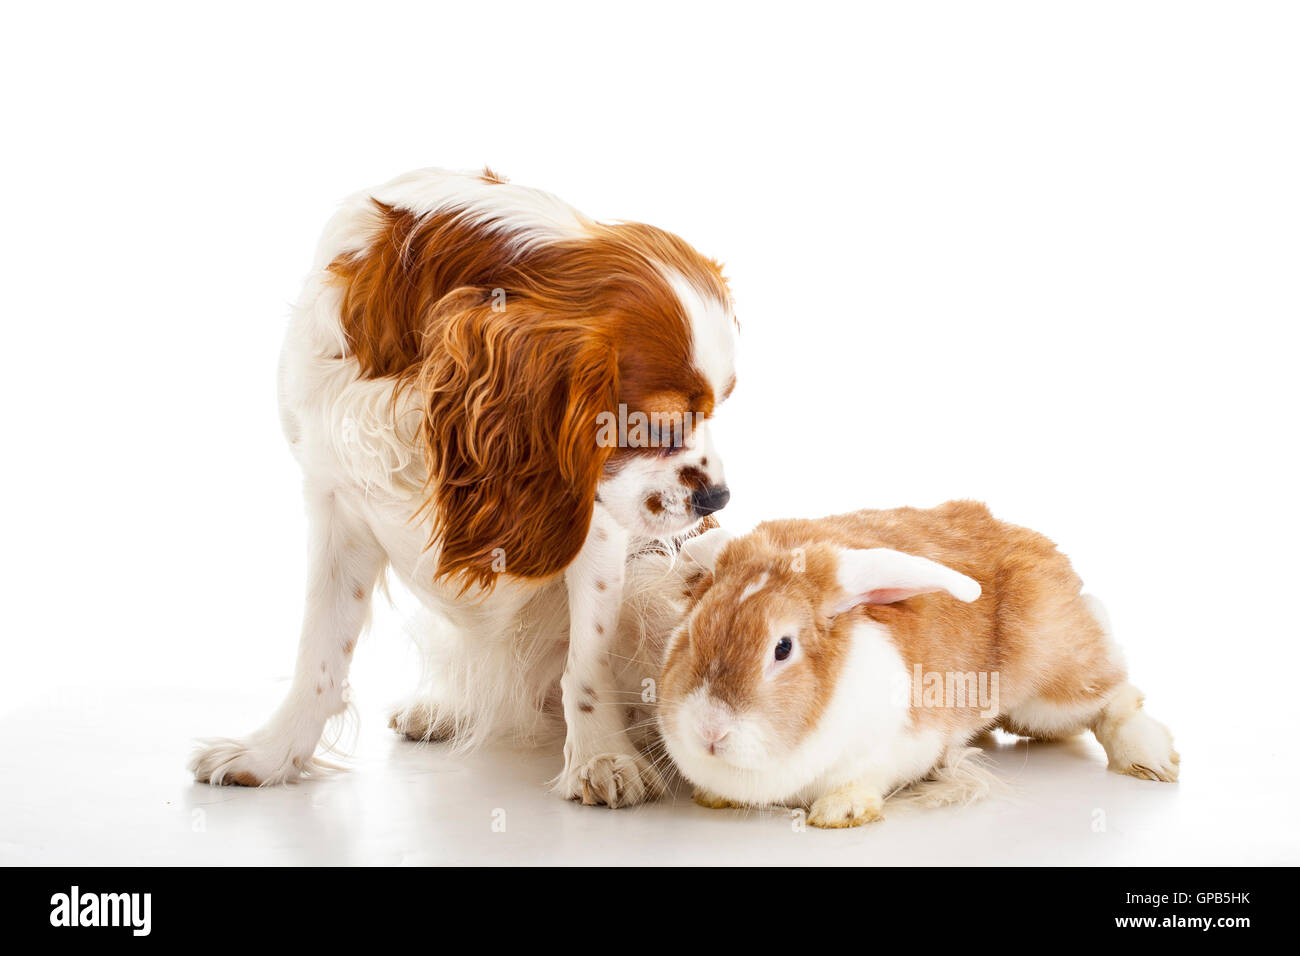 Dog with bunny. Dog with rabbit. King charles and lop are friends. Animal friends sit together in studio white background. - Stock Image